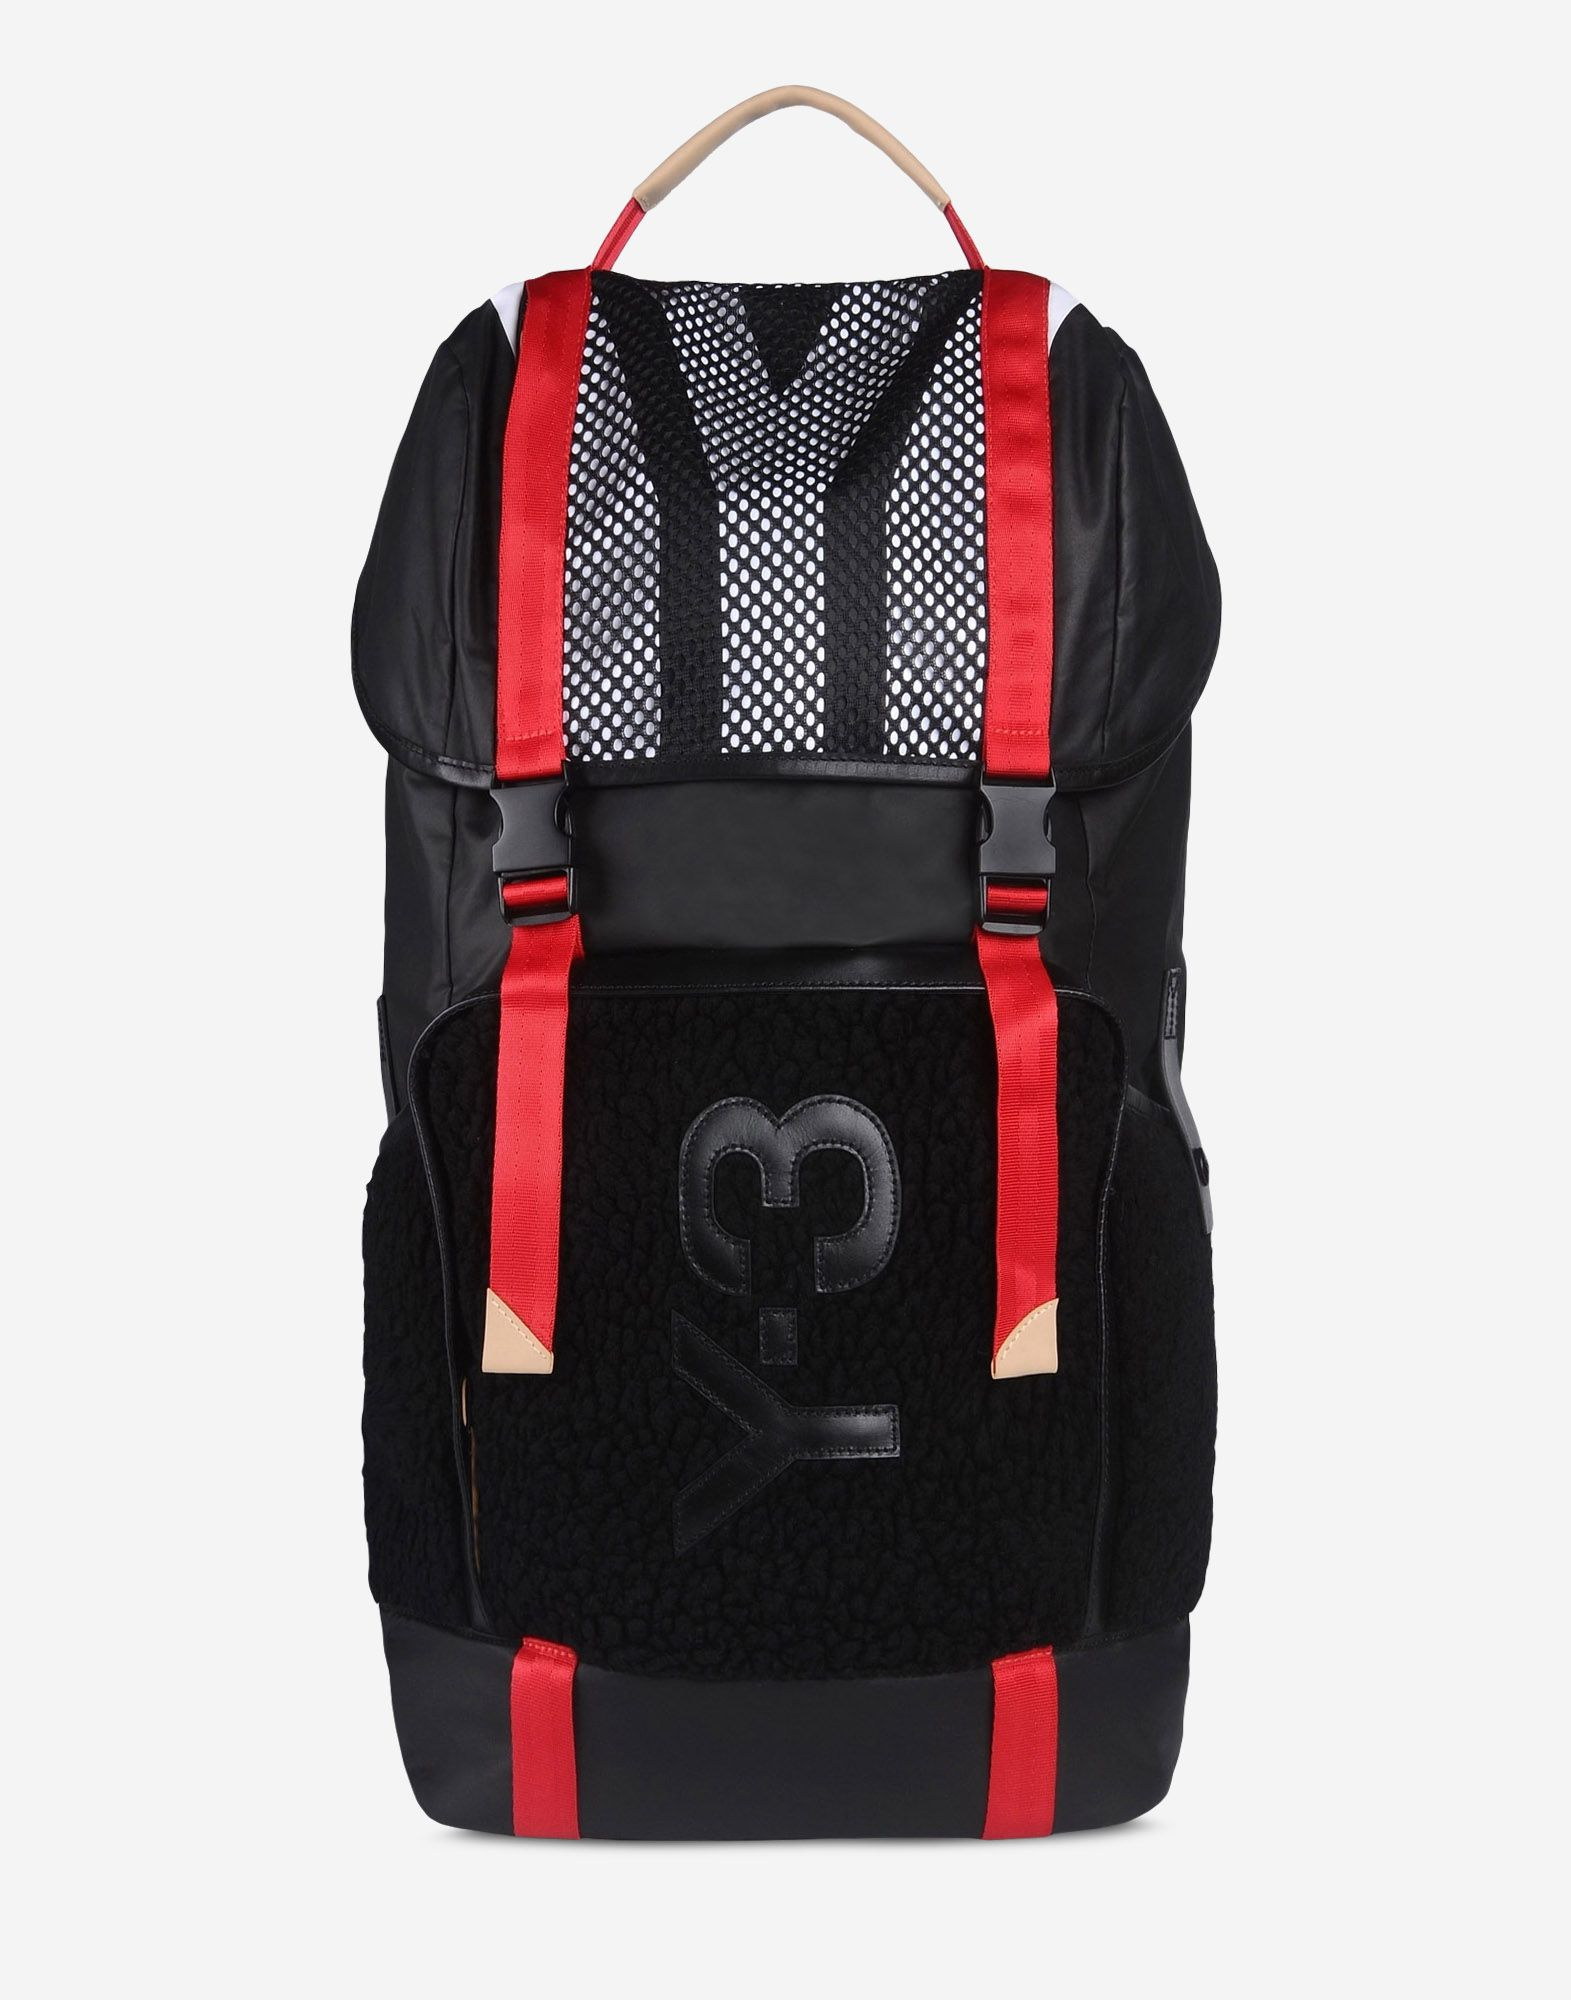 efdd6d7f1e440 ... Y-3 Y-3 FS Highlight Backpack Backpack E f ...